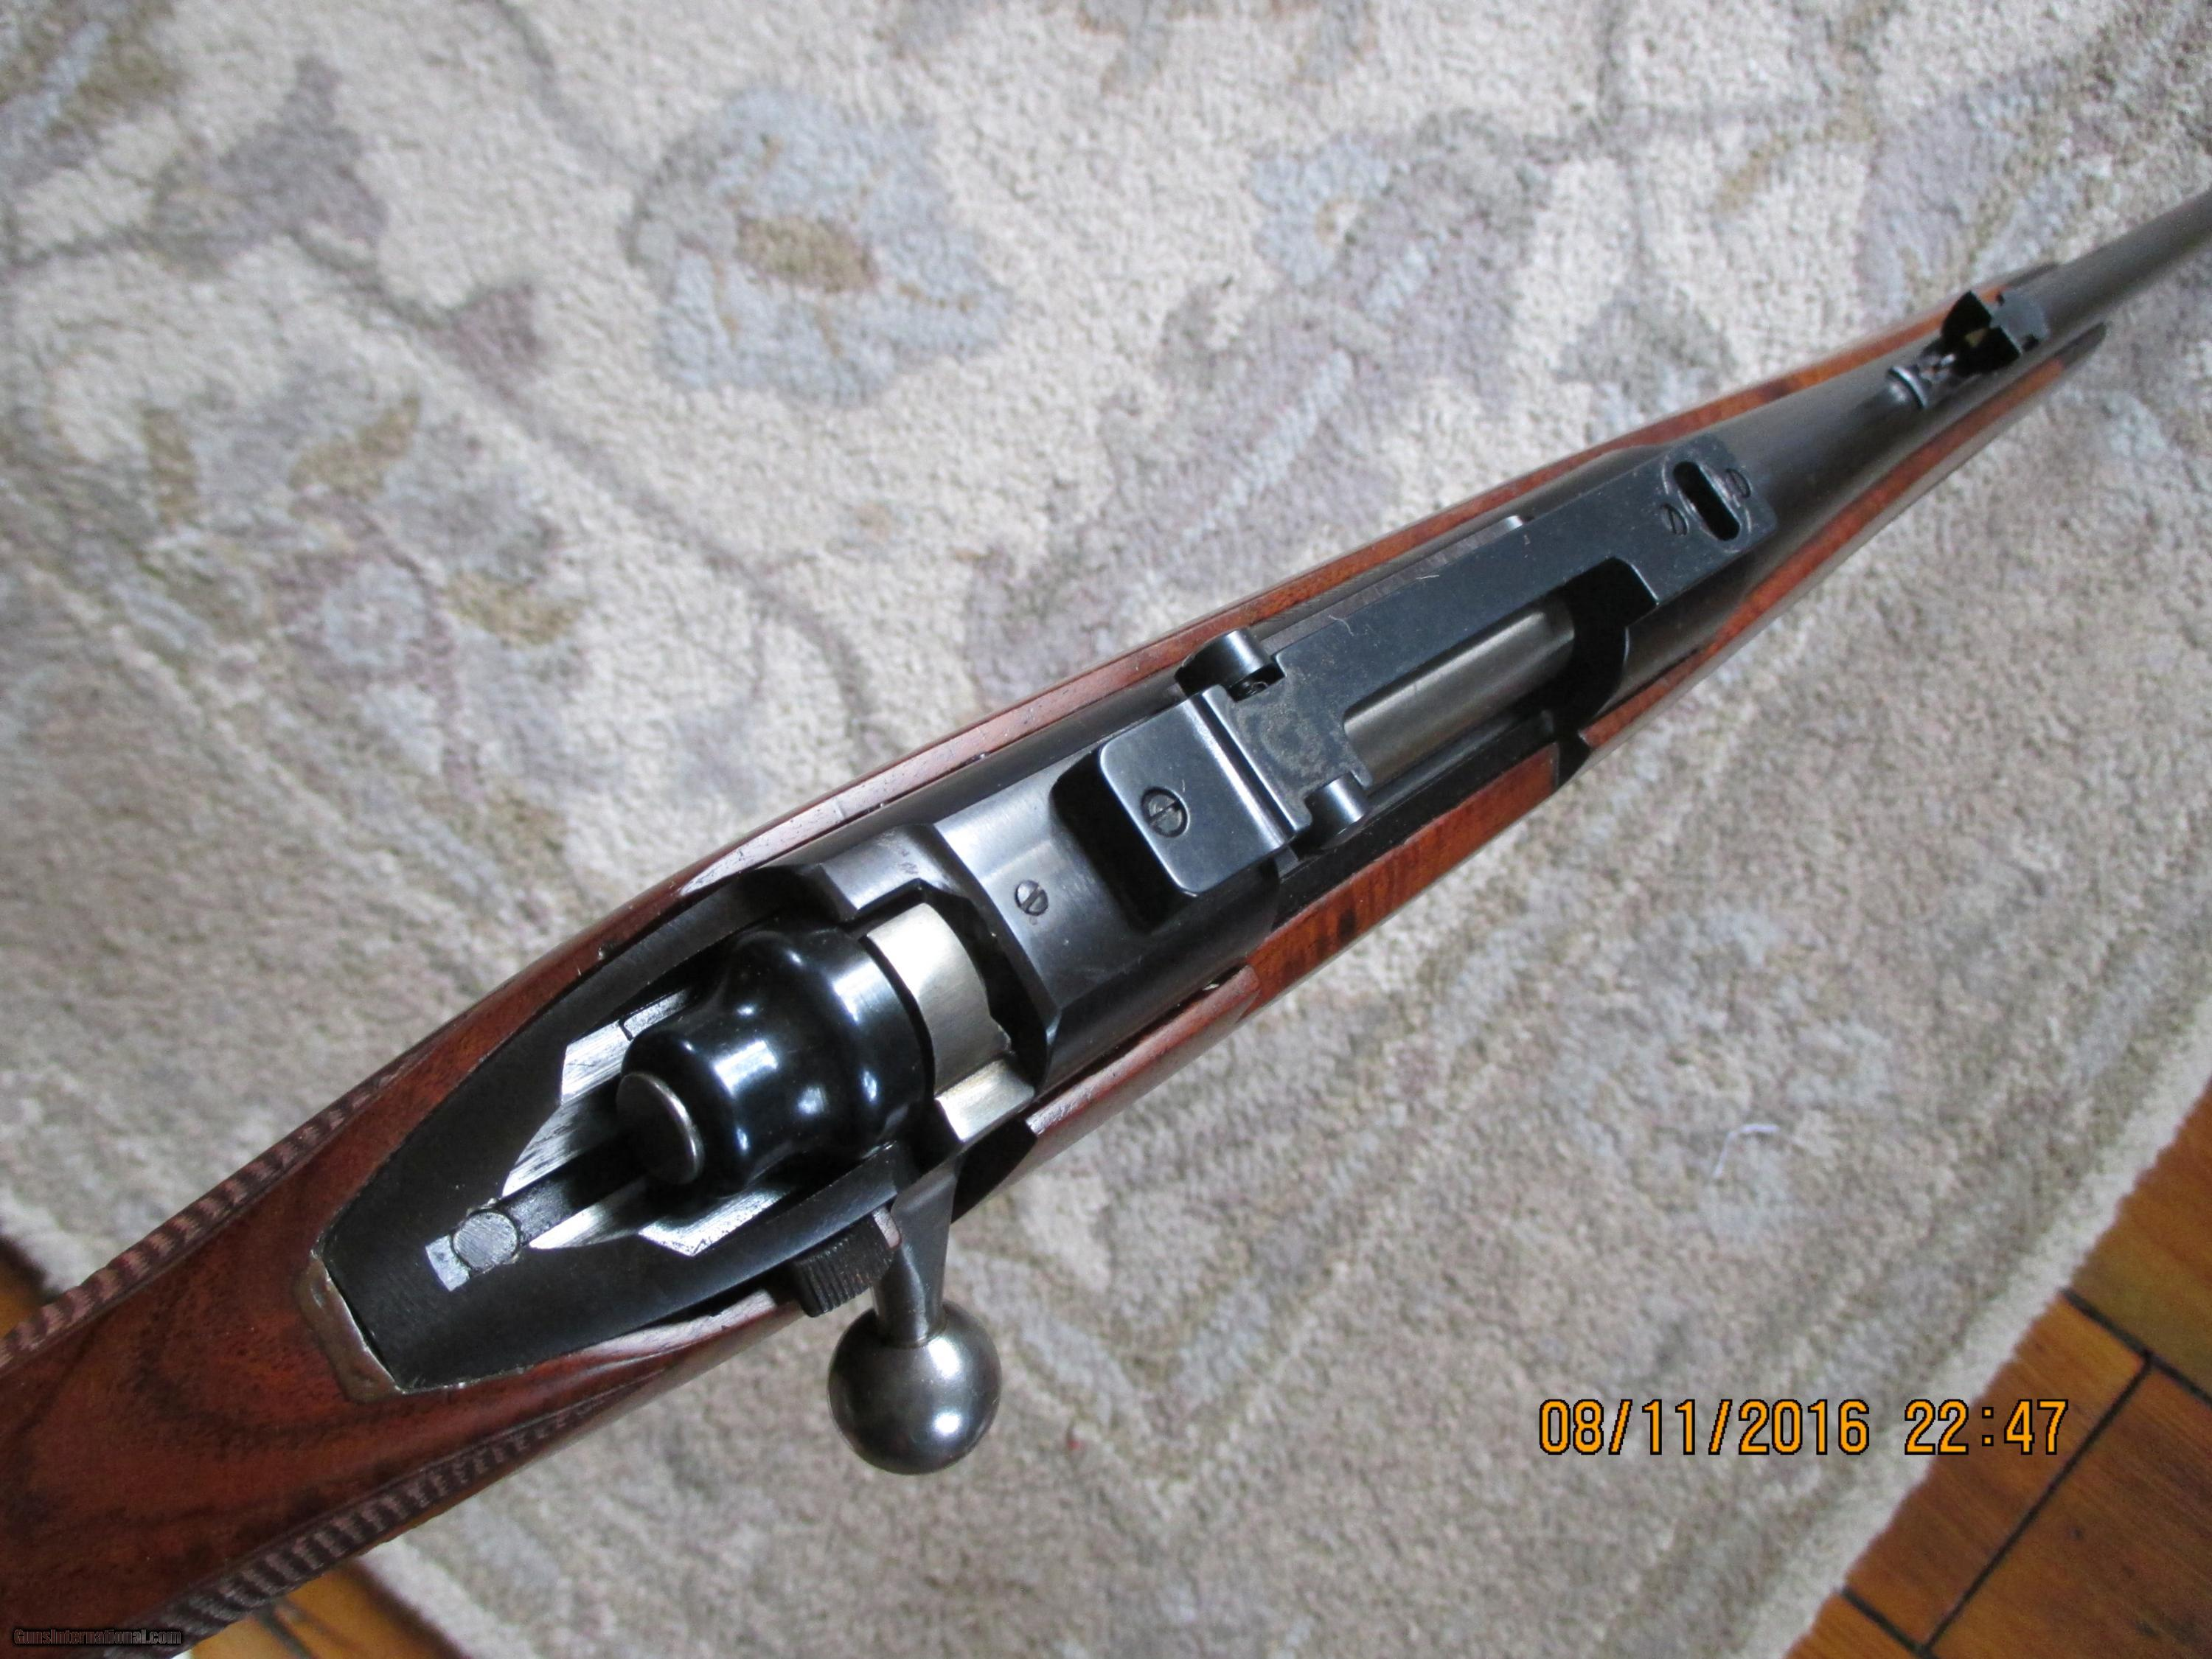 Dating a remington 721. Details on the Remington Society of America on the Manufactured Date link.